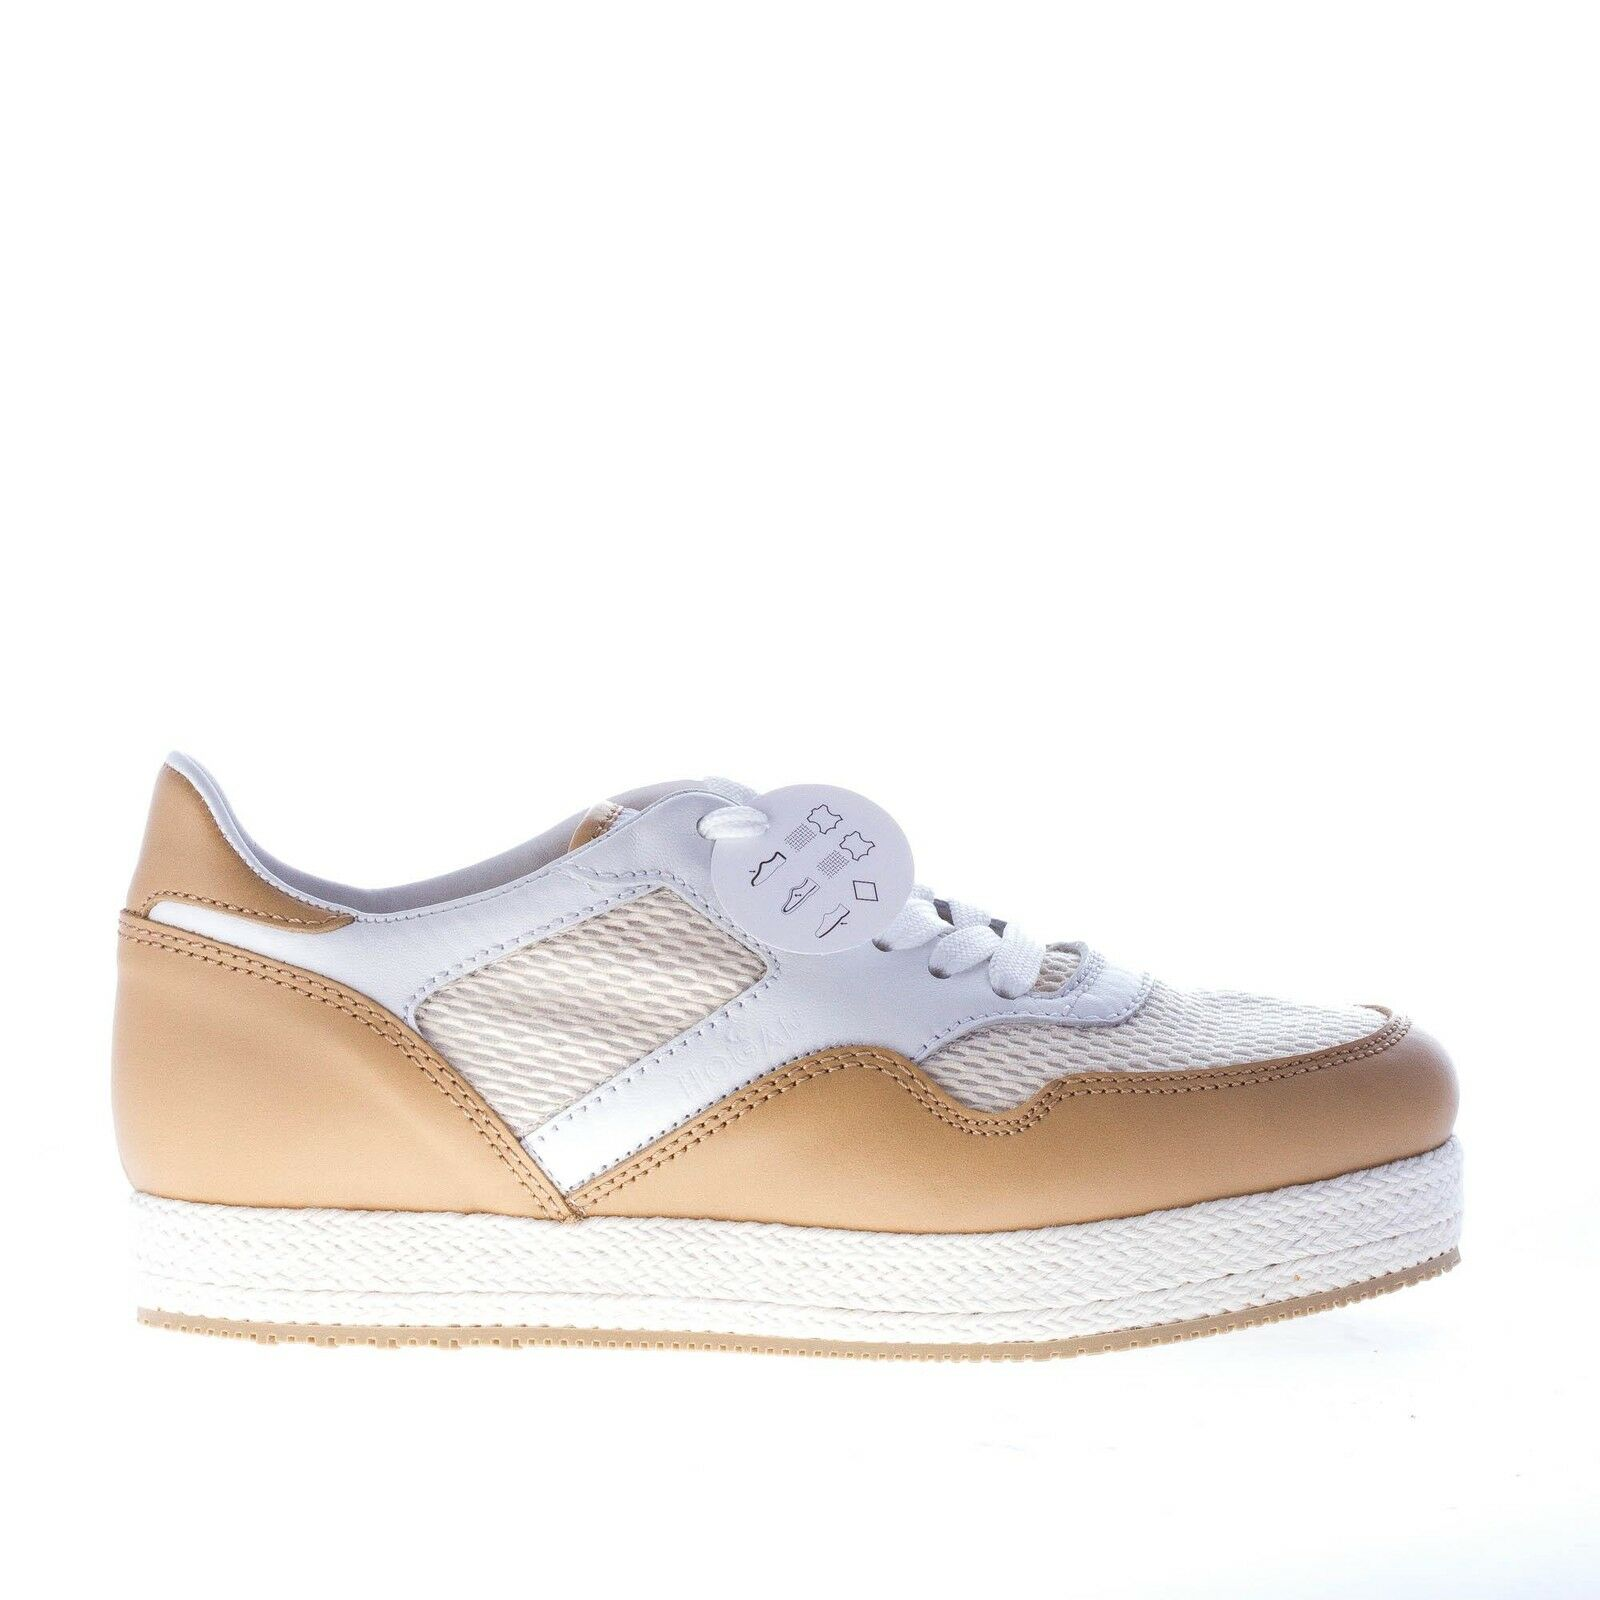 HOGAN shoes femme women shoes H 268 lace up sneaker with rope trim